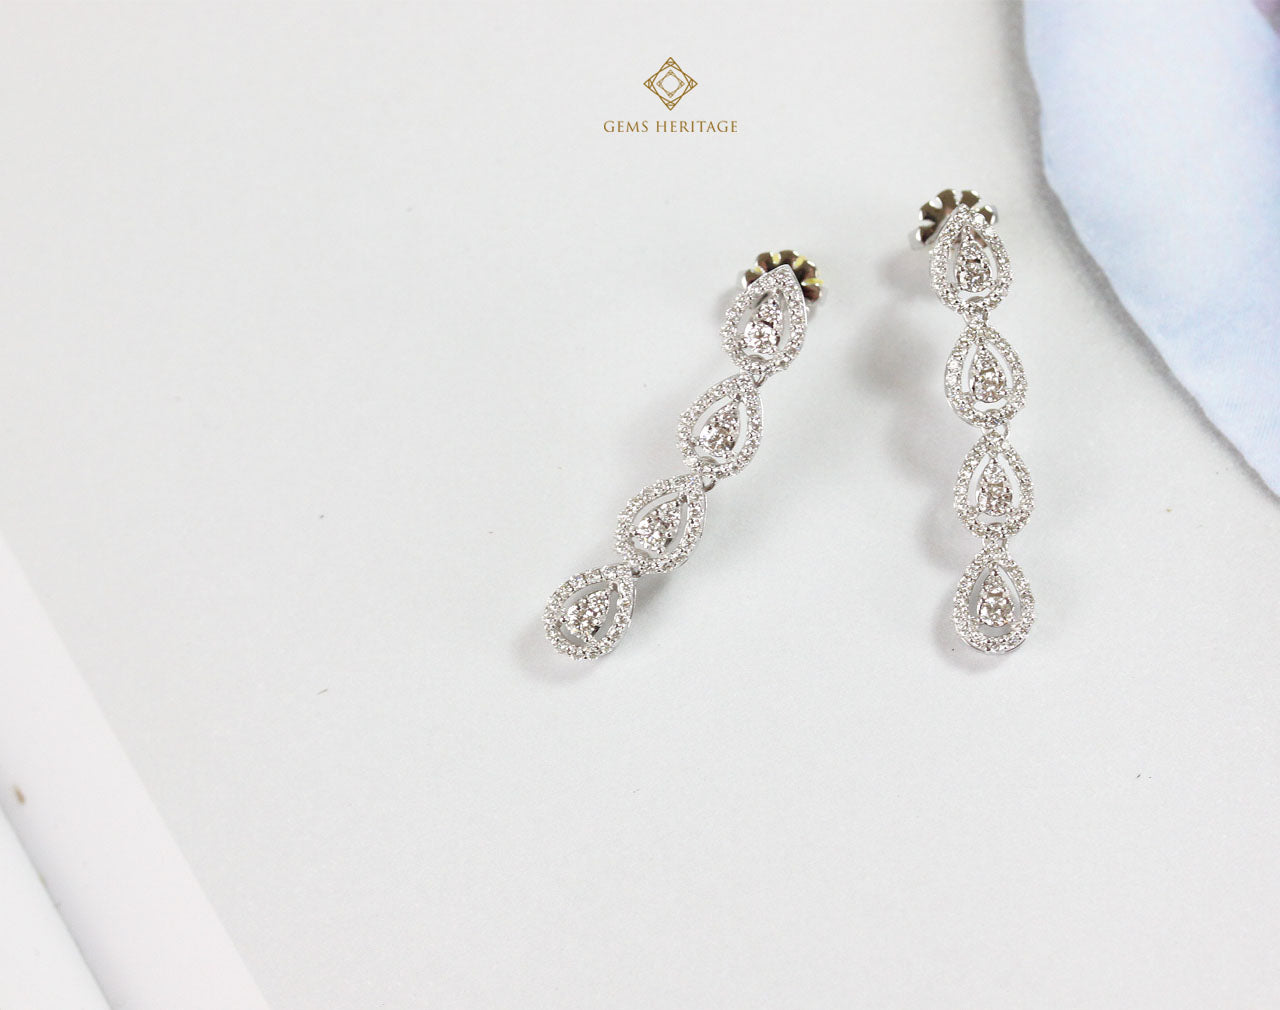 Pear drops diamond earrings